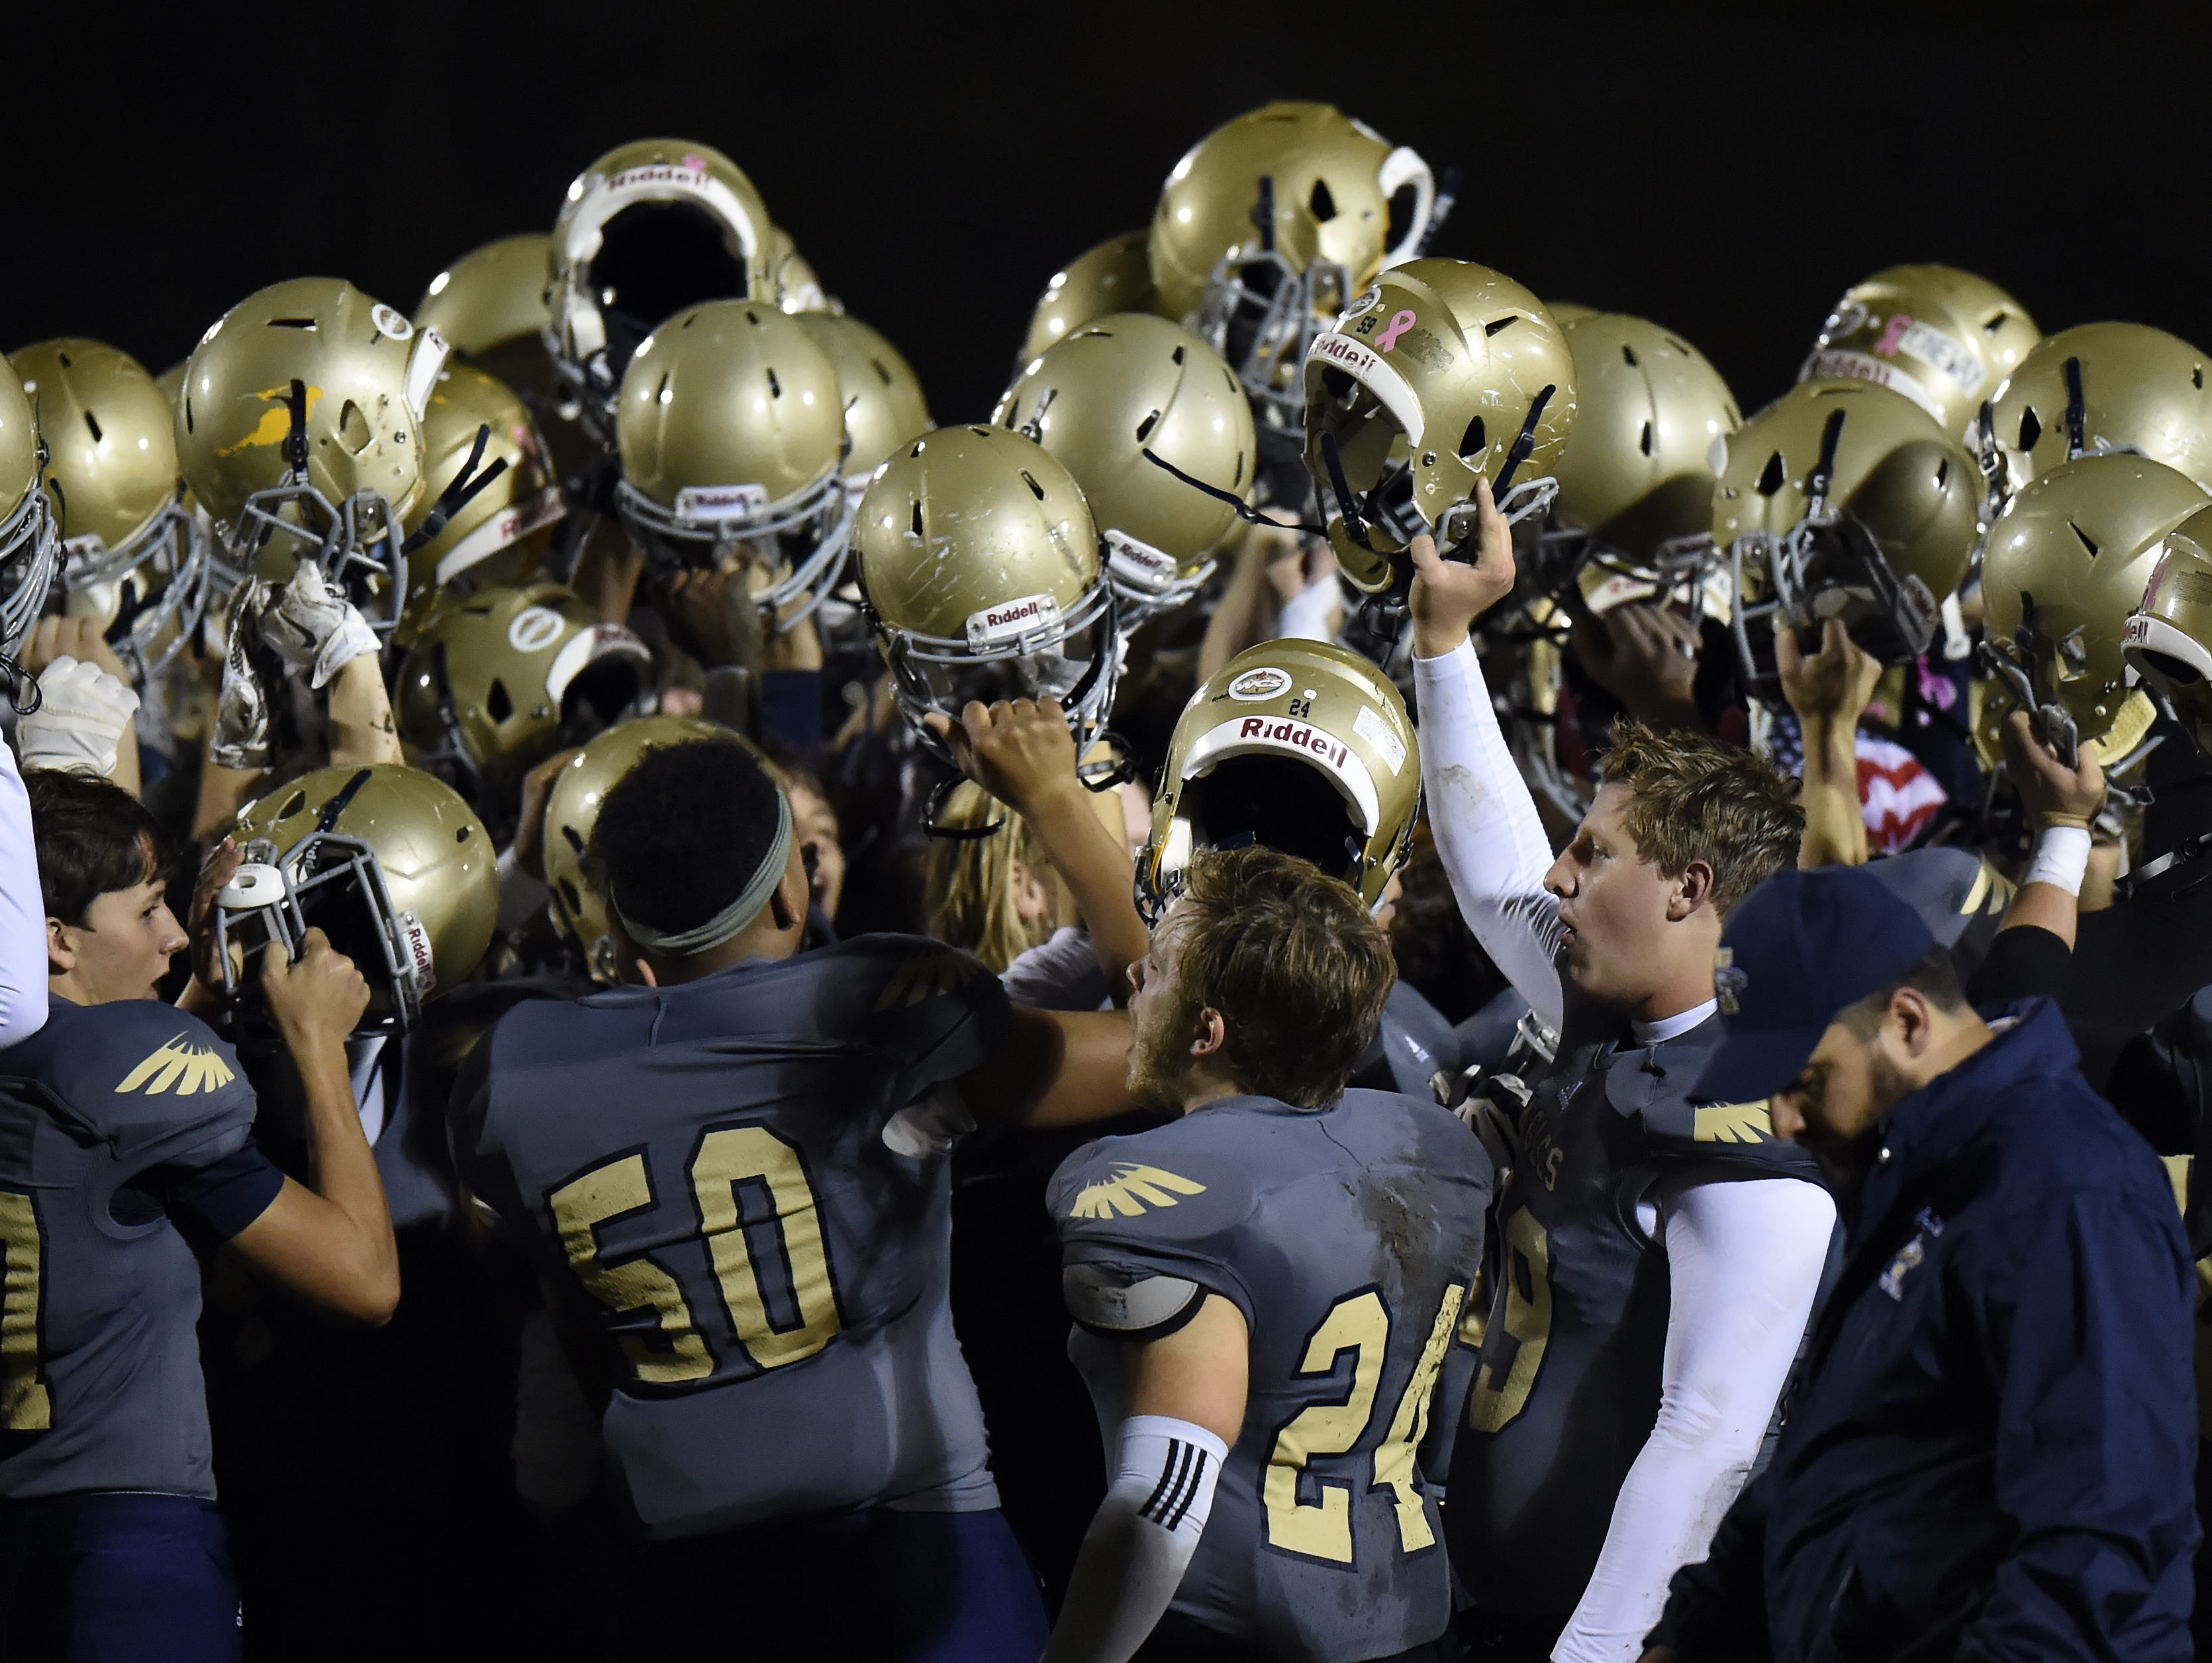 Independence players celebrate a 49-7 win over Cane Ridge in a Class 5A playoff game on Friday. Independence players celebrate their 49-7 win over Cane Ridge in a 5A playoff game Friday.